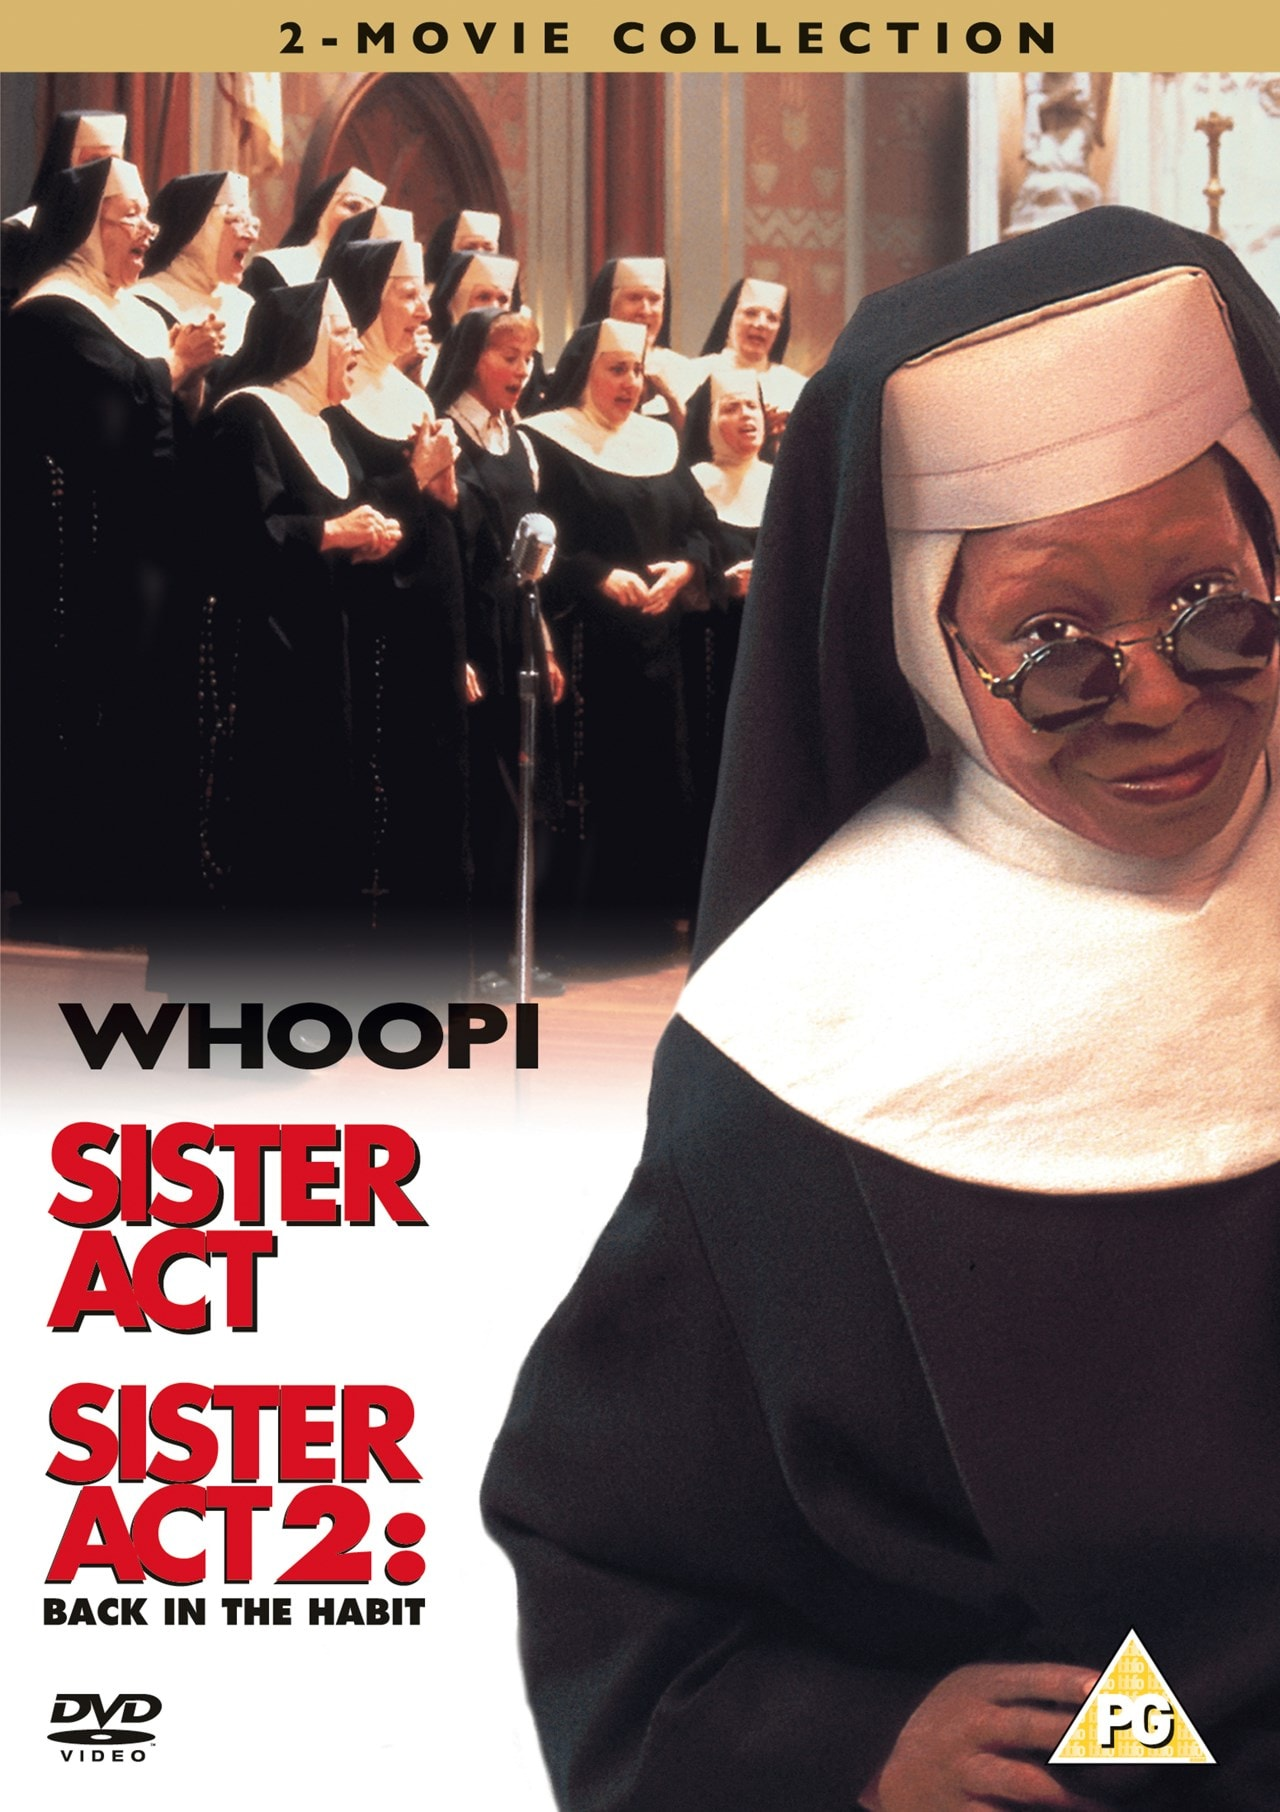 Sister Act/Sister Act 2 - Back in the Habit - 1